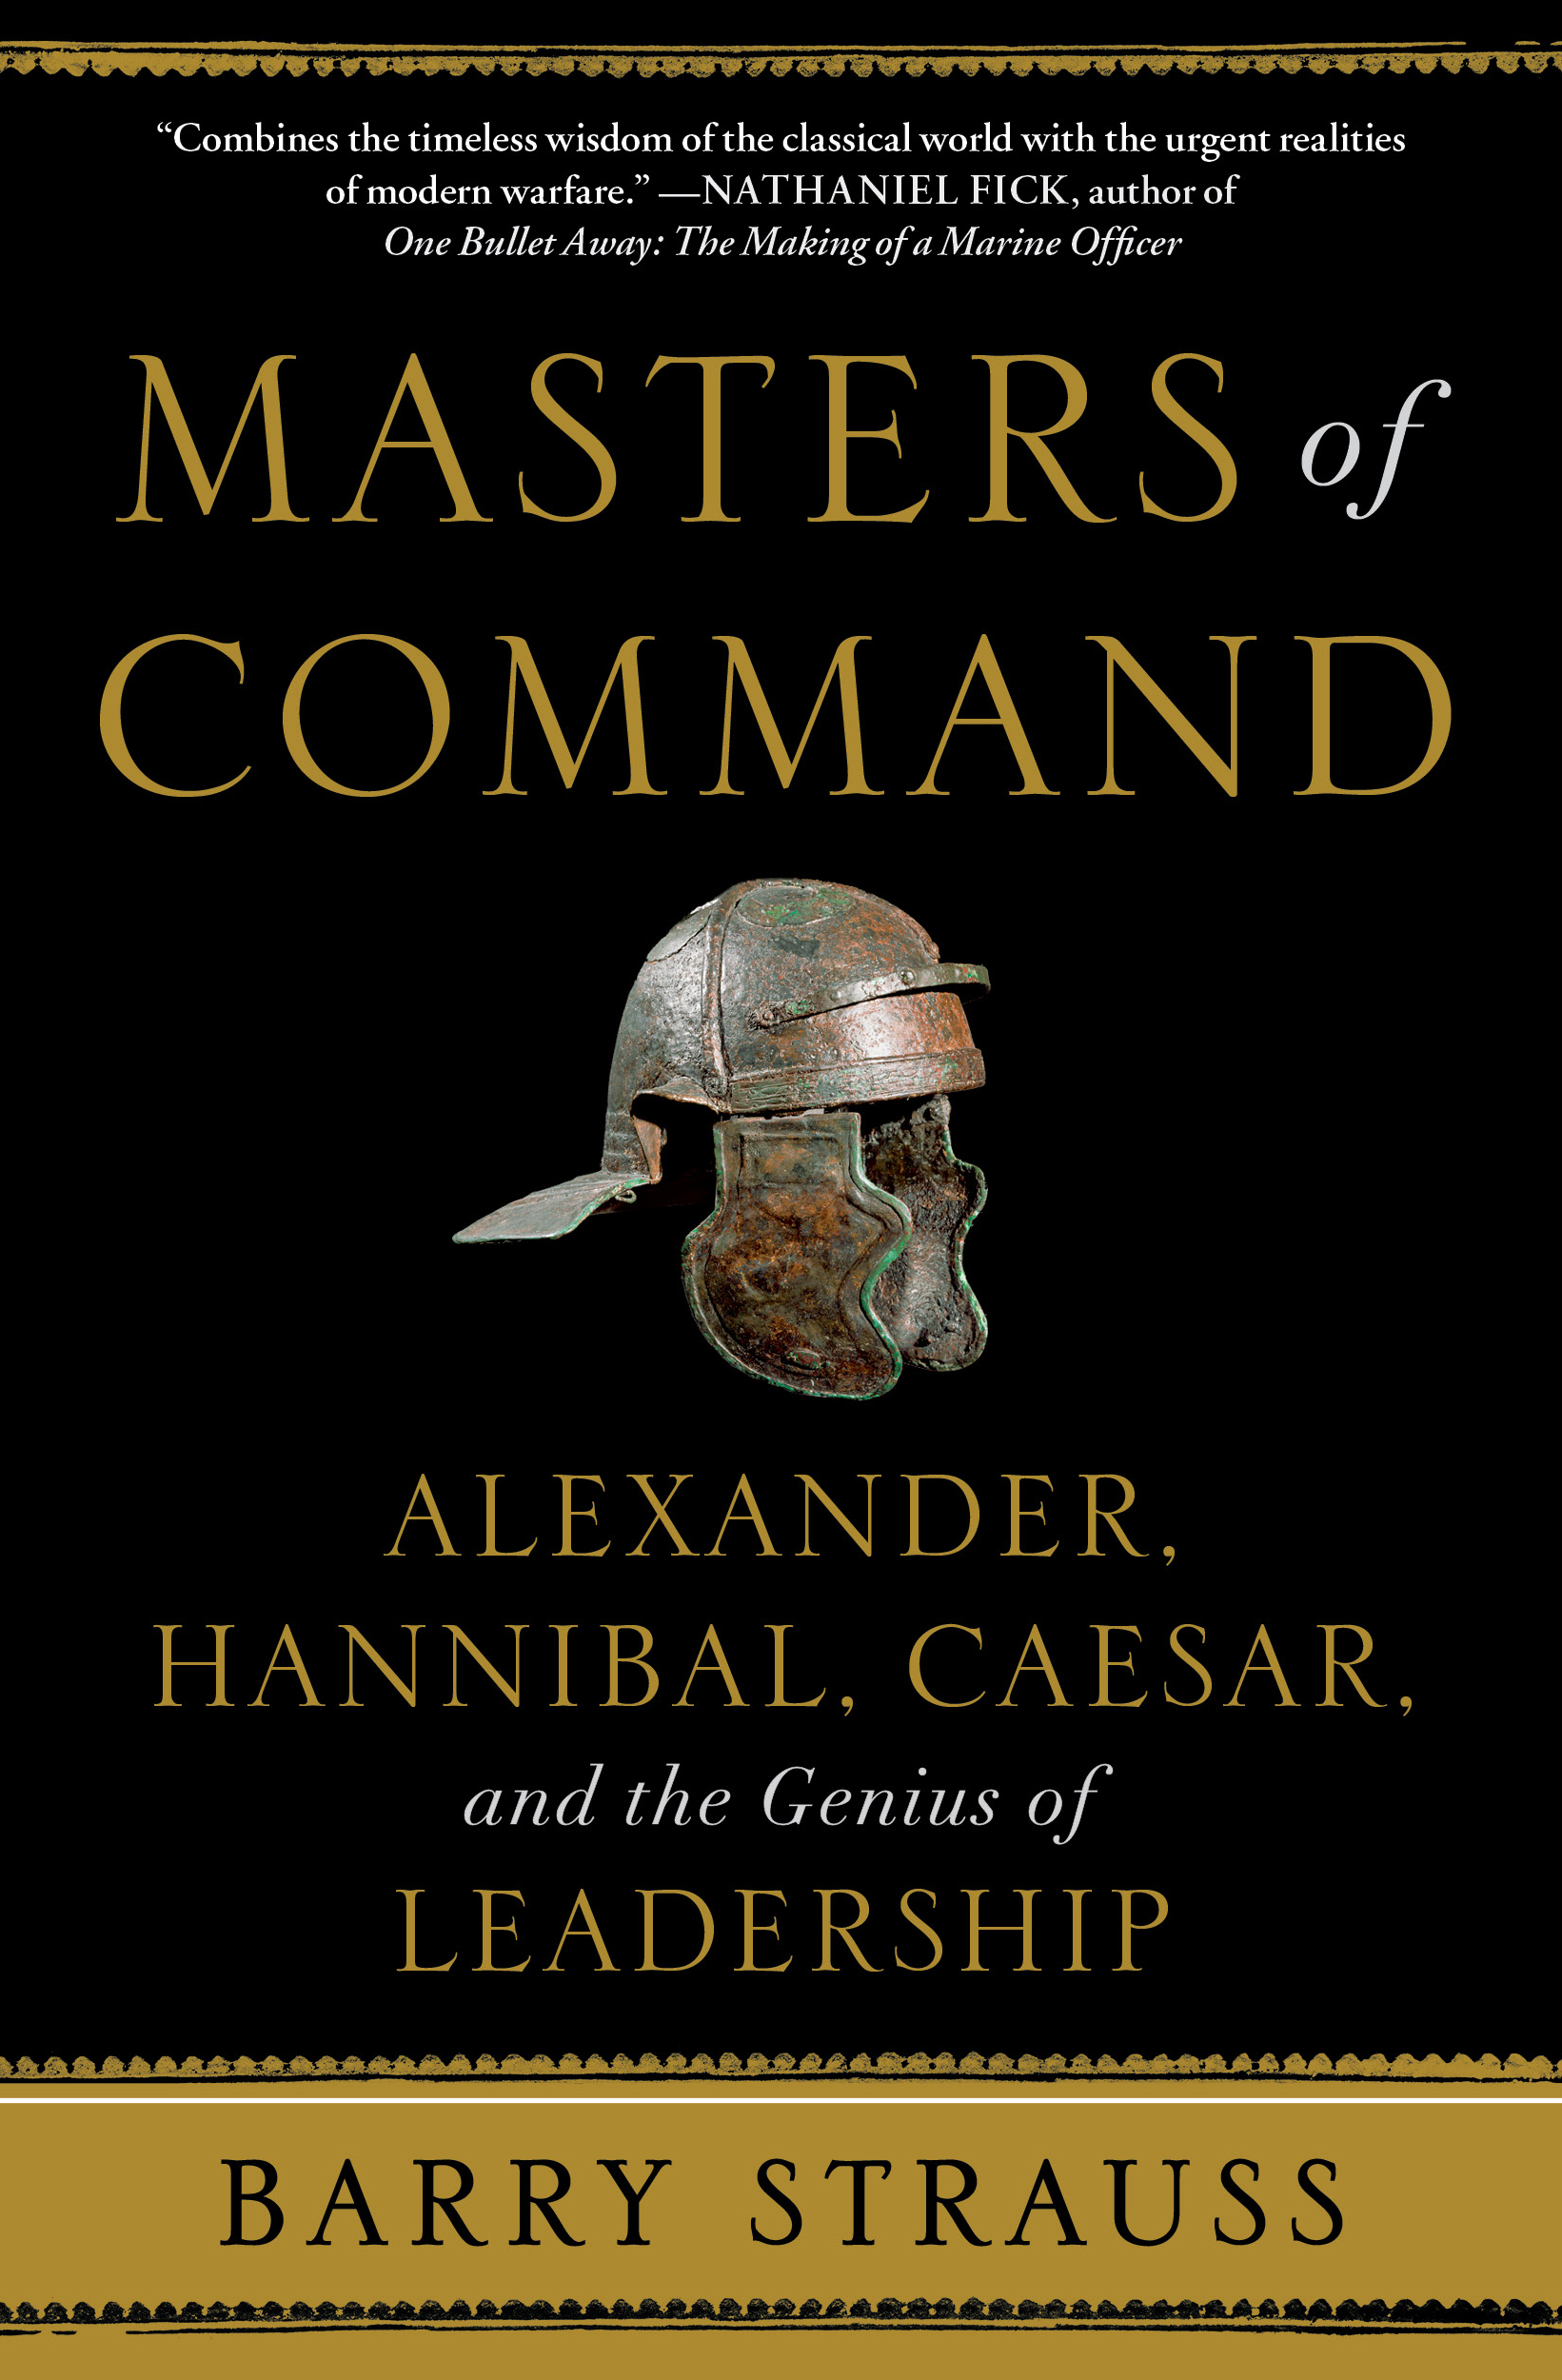 Masters of command 9781439164495 hr